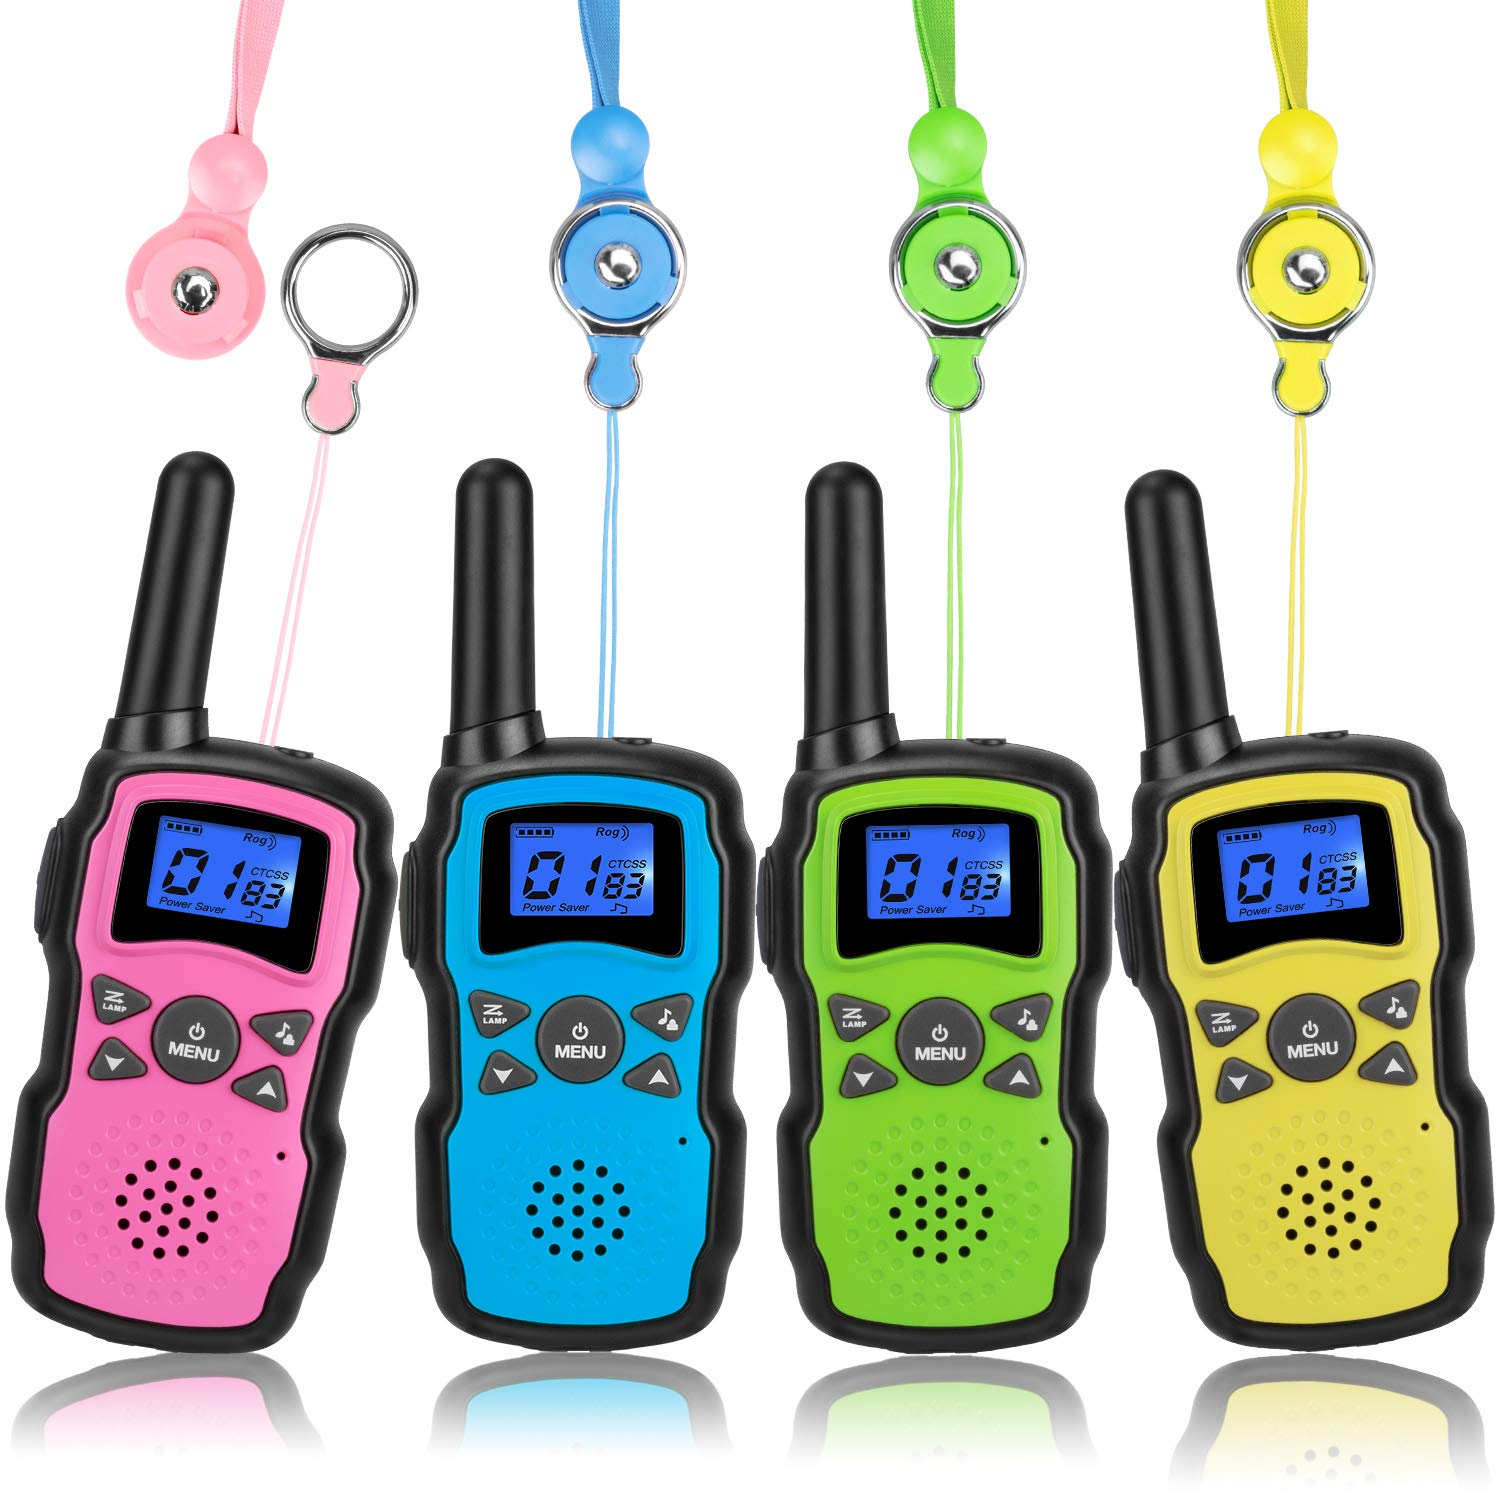 Wishouse Walkie Talkies for Kids 4 Packs, Two Way Radio Family Talkabout for Adults Cruise Ship Long Range, Outdoor Camping Hiking Fun Toys Birthday Gift for 3 4 5 6 7 8 9 10 11 12 Year Old Girls Boys by Wishouse (Image #1)